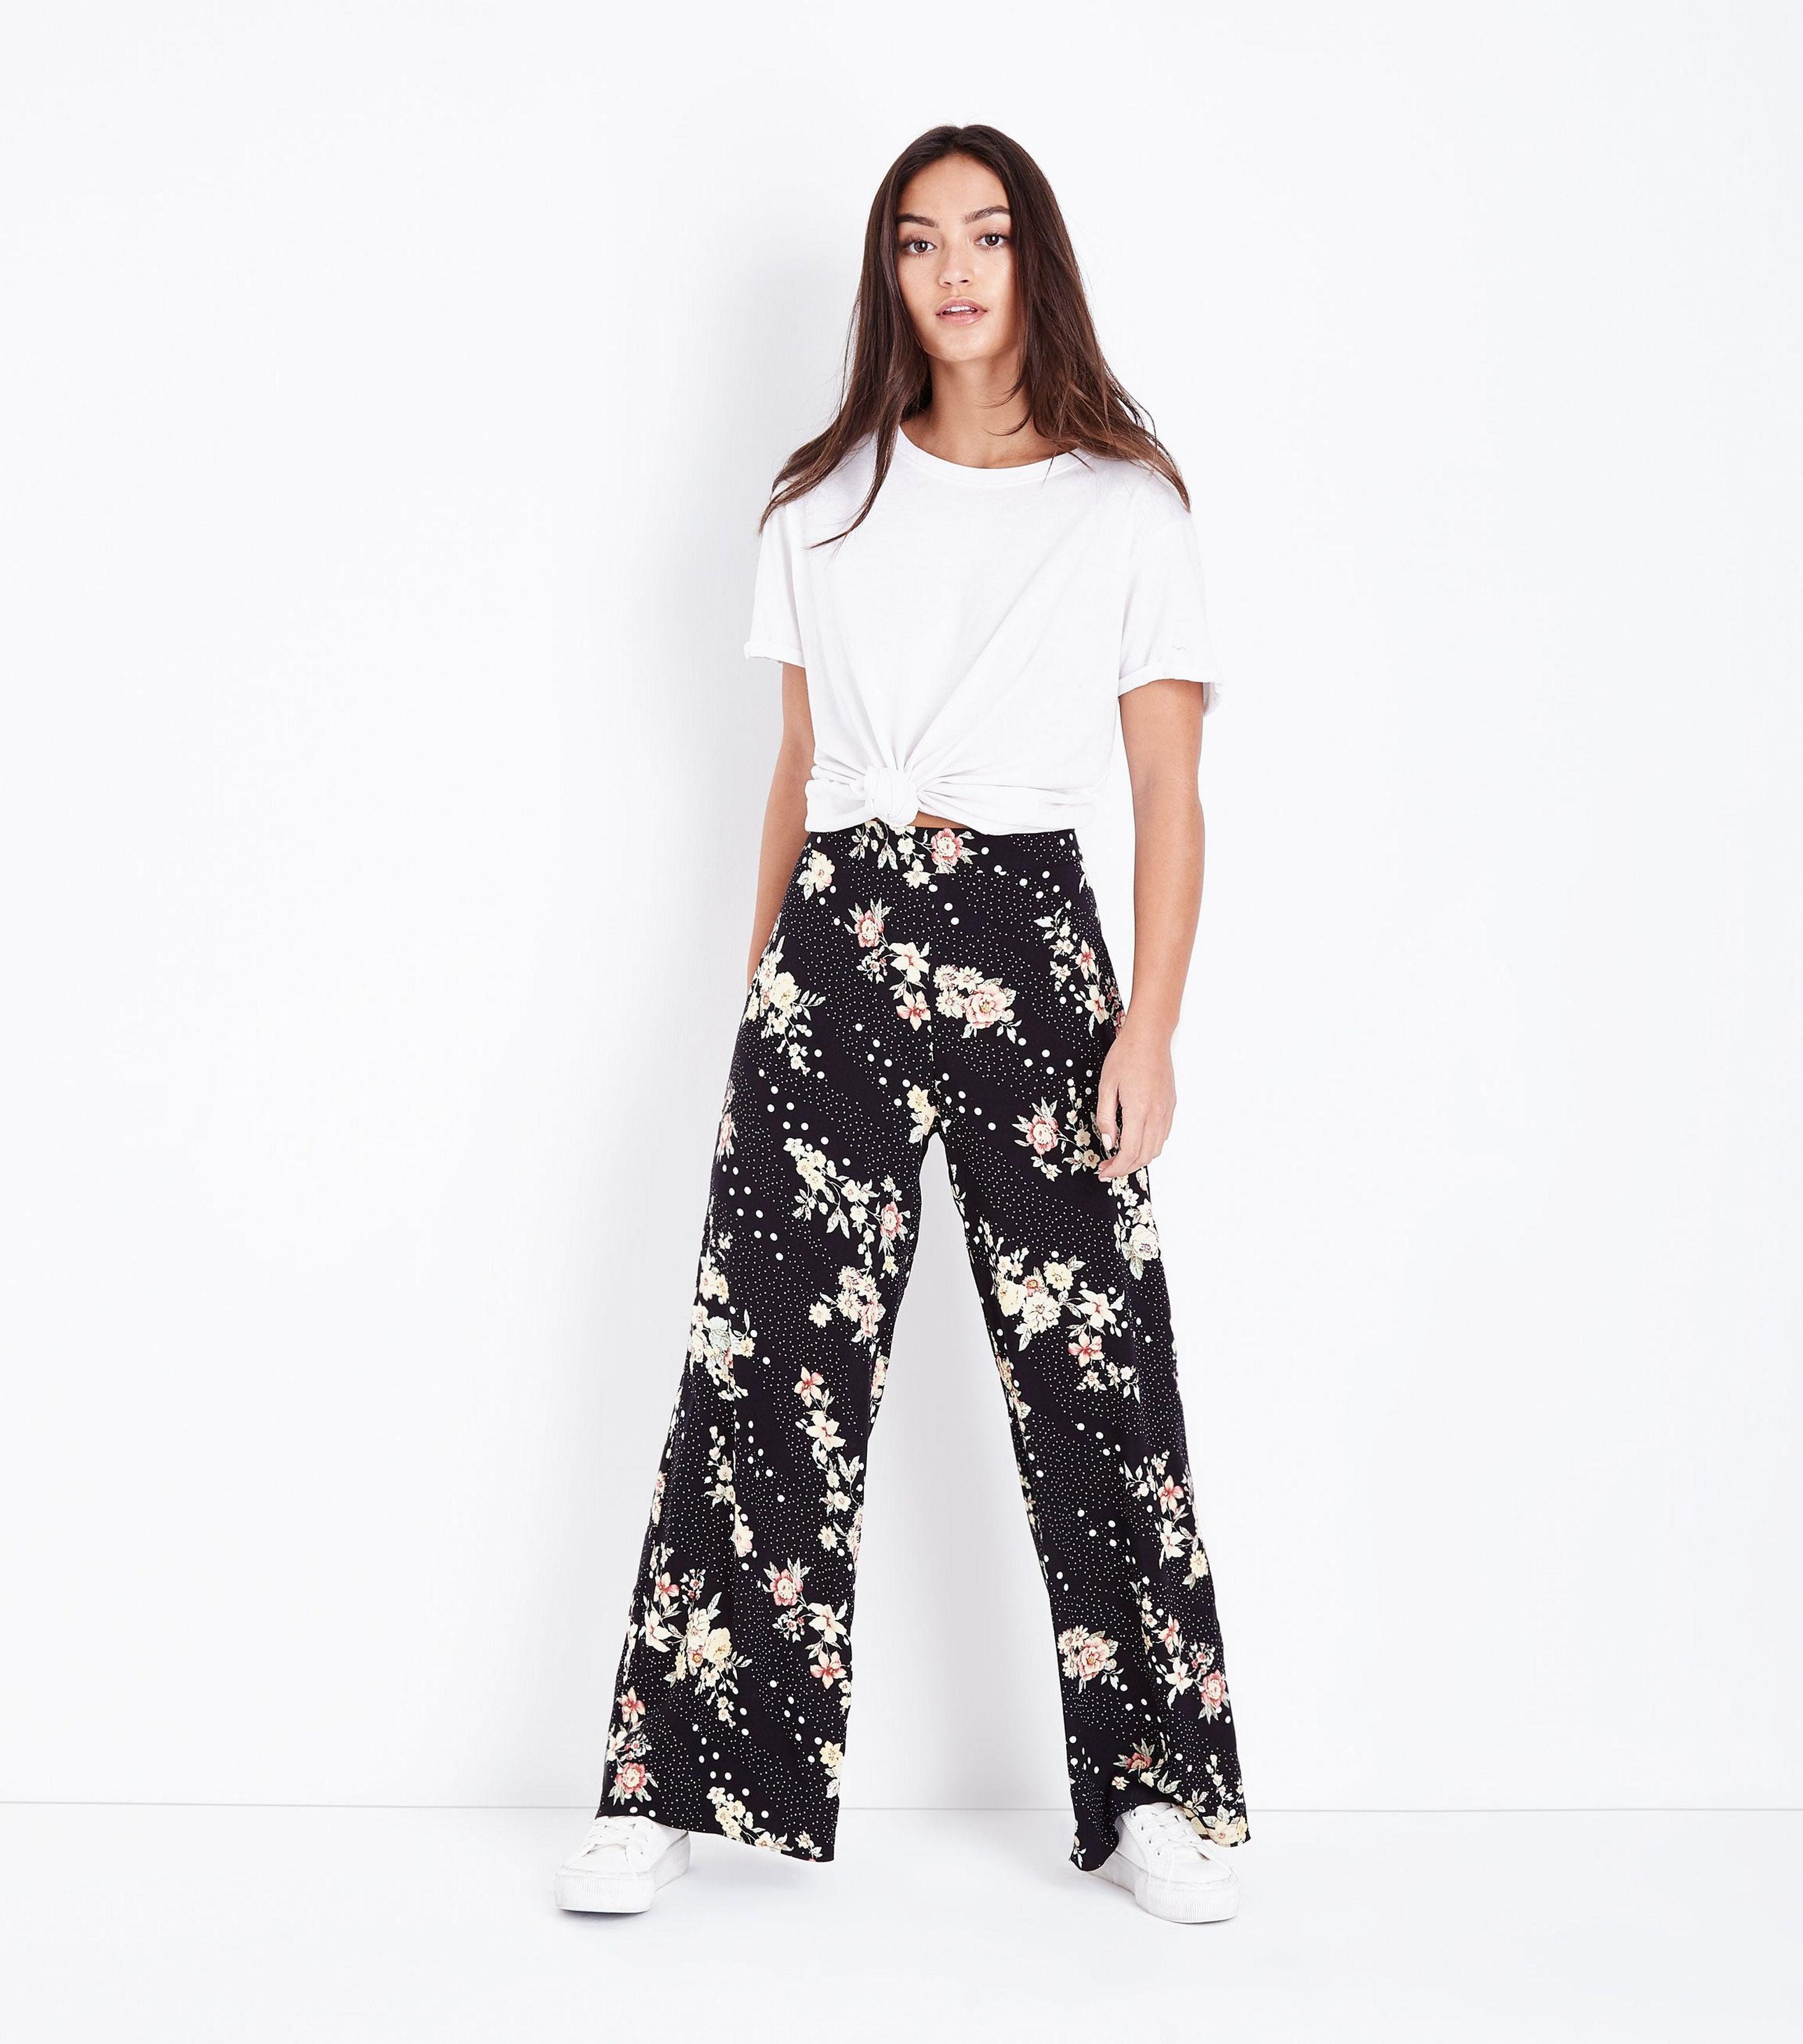 0b186e31293f New Look Petite Black Floral Spot Print Wide Leg Trousers in Black ...